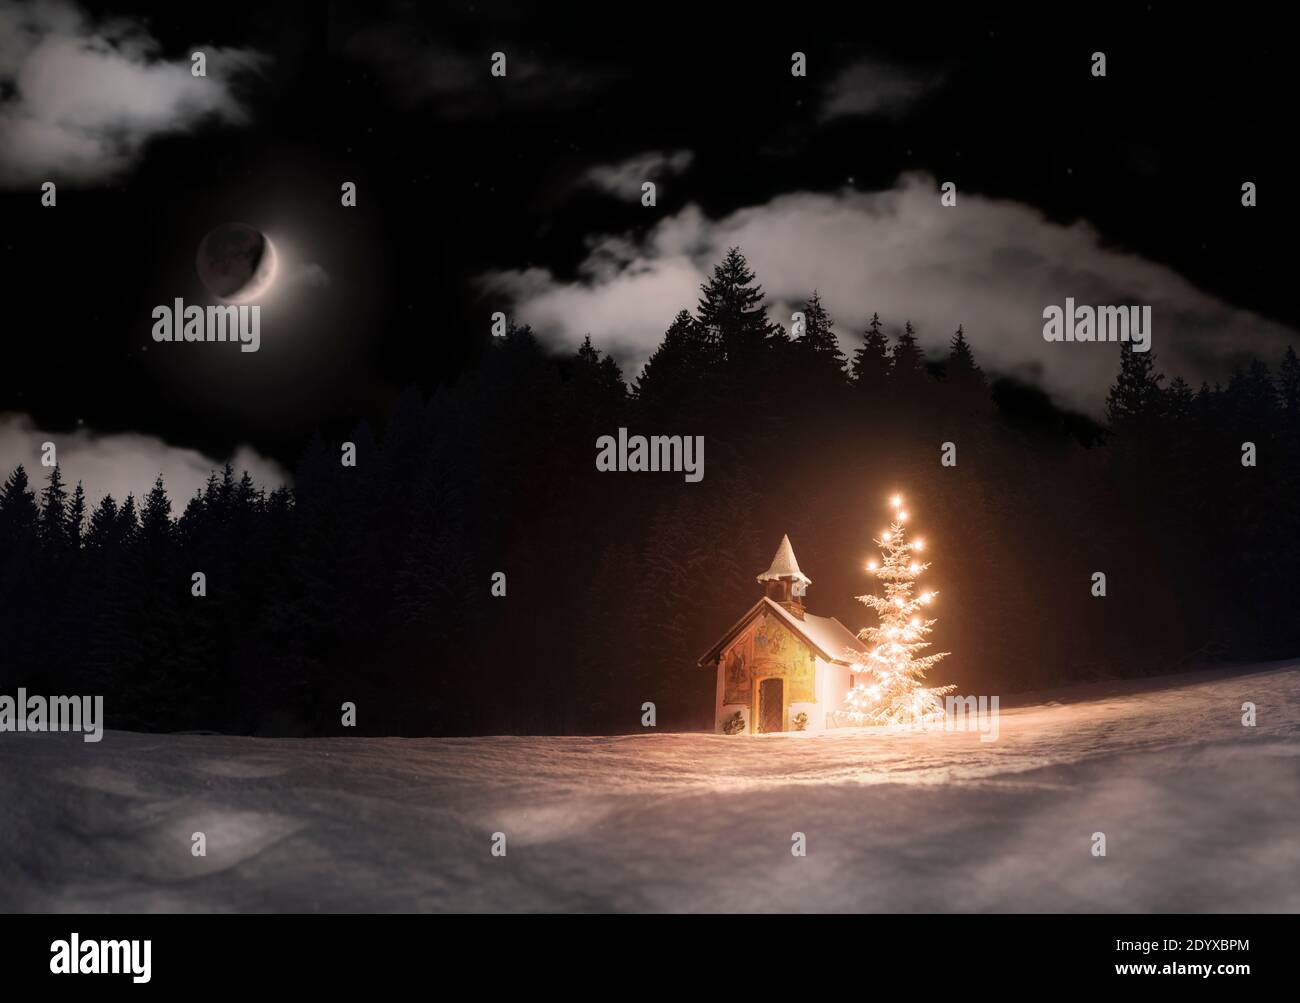 Christmas Moon High Resolution Stock Photography And Images Alamy